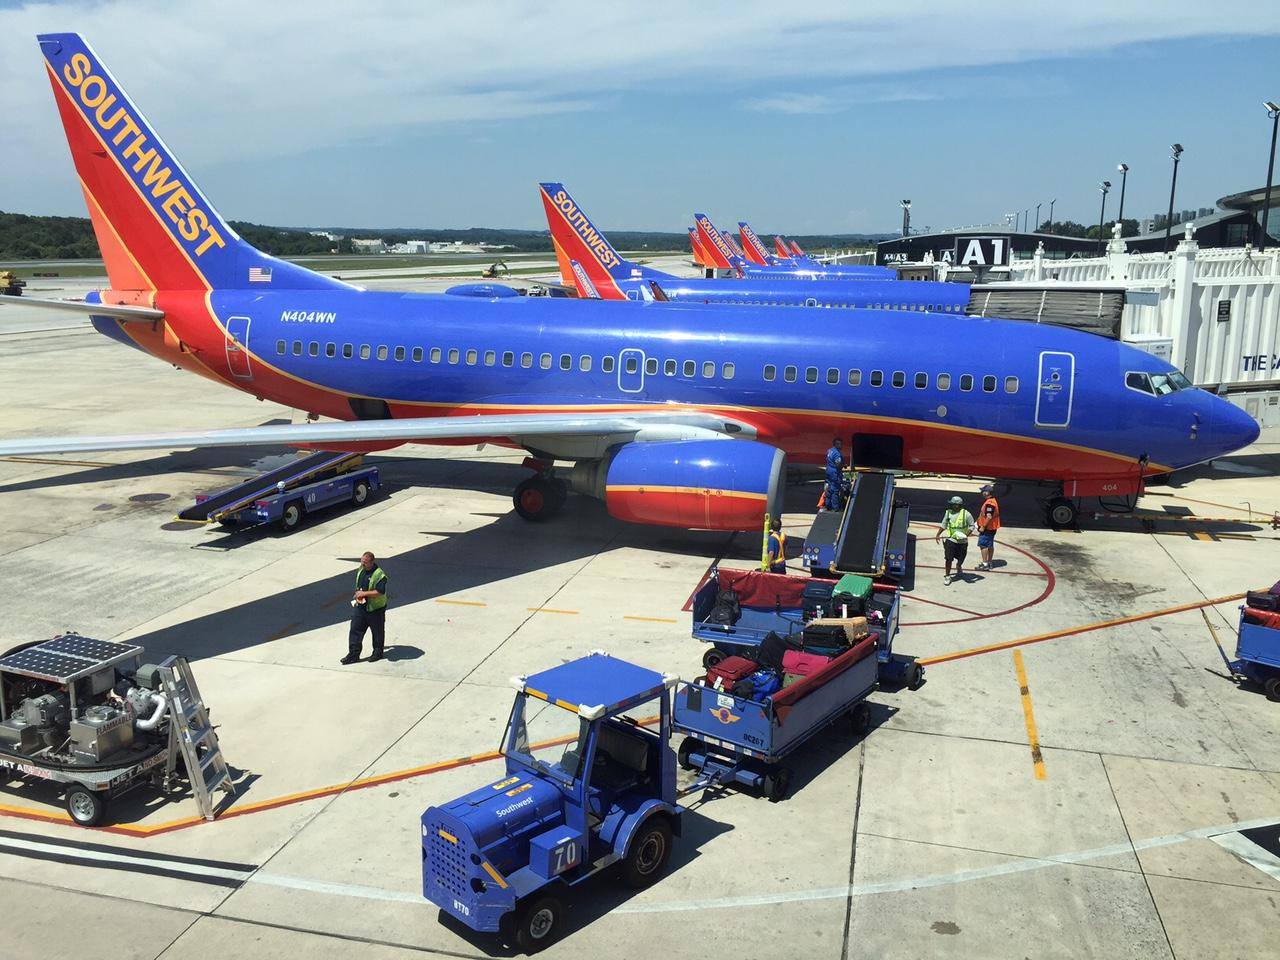 Pickup Truck Hits Southwest Airlines Plane, Gets Stuck Under Aircraft